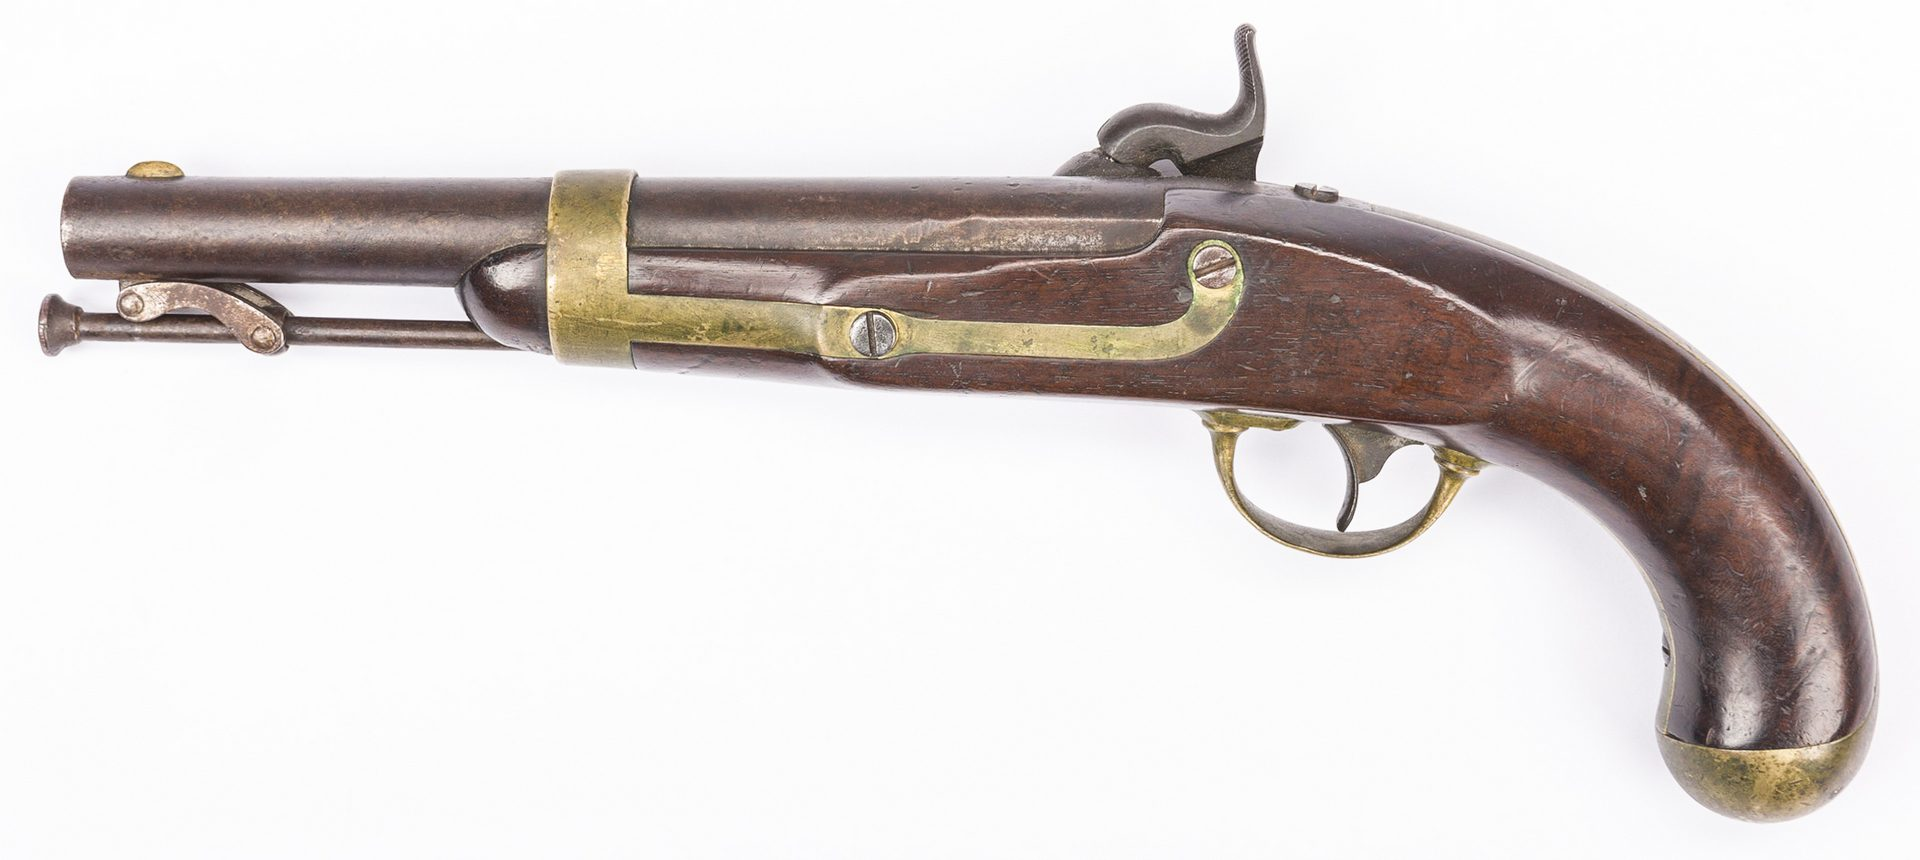 Lot 501: U.S. Henry Aston Model 1842 Percussion Pistol